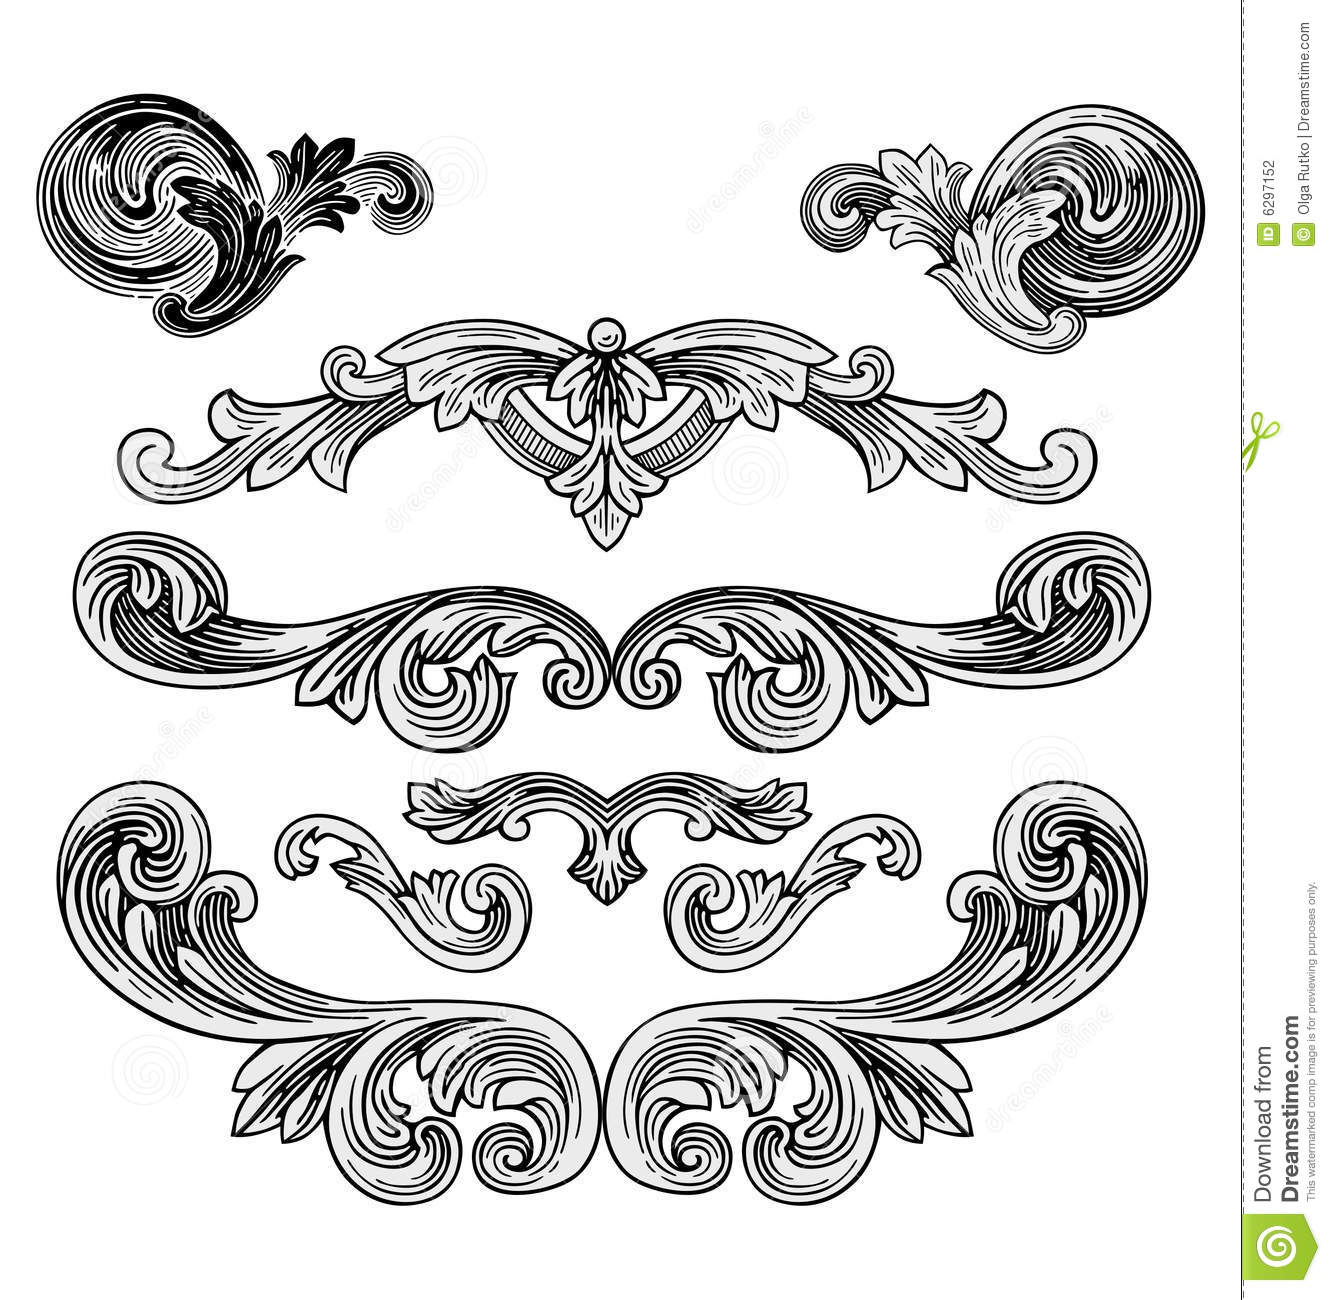 Royal Design Elements Vector Stock Vector - Illustration ...